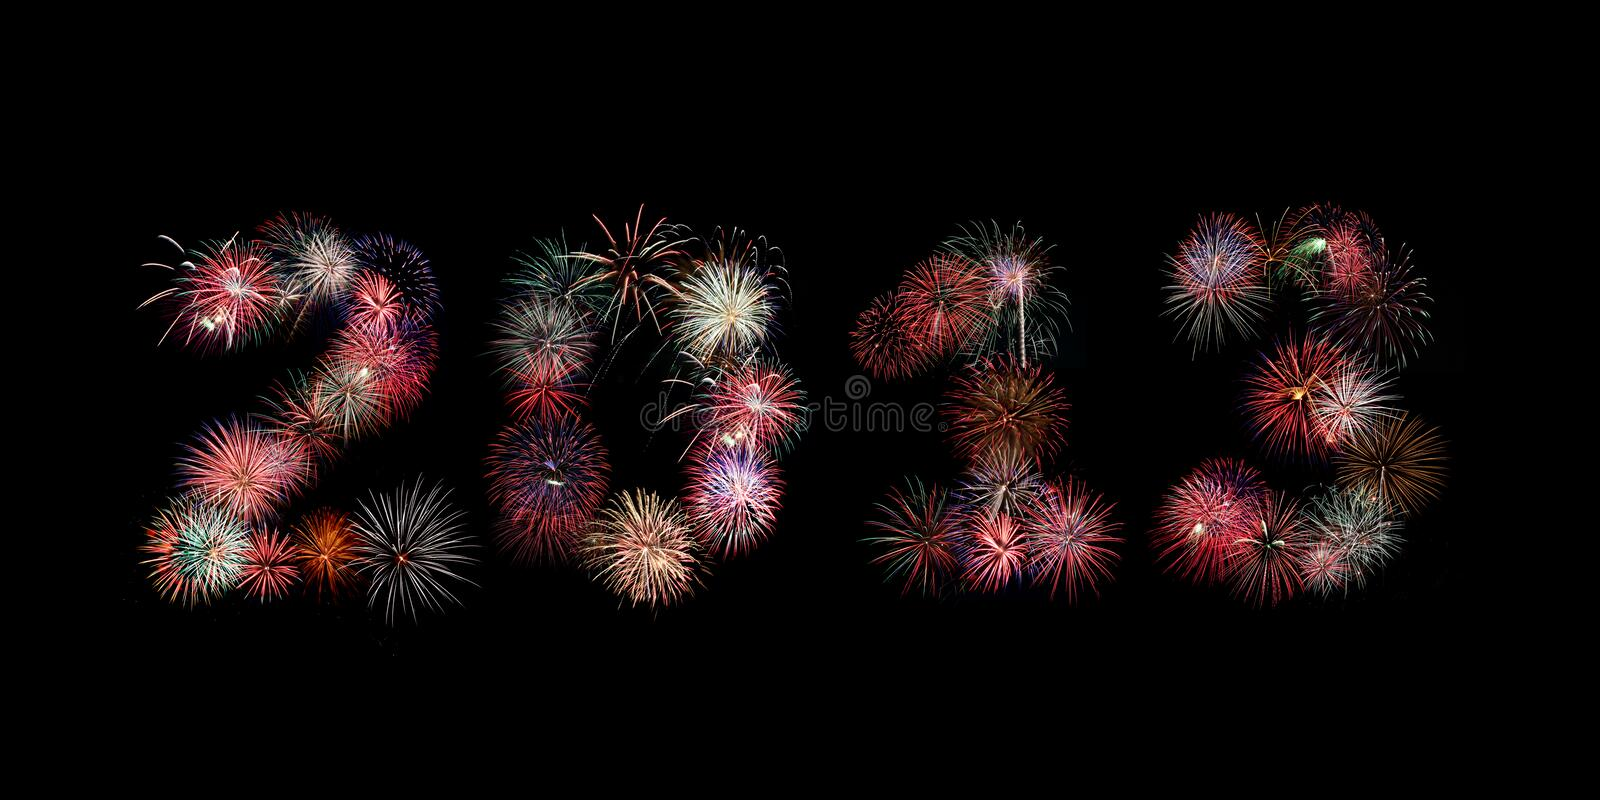 The year 2013 written in fireworks royalty free stock image